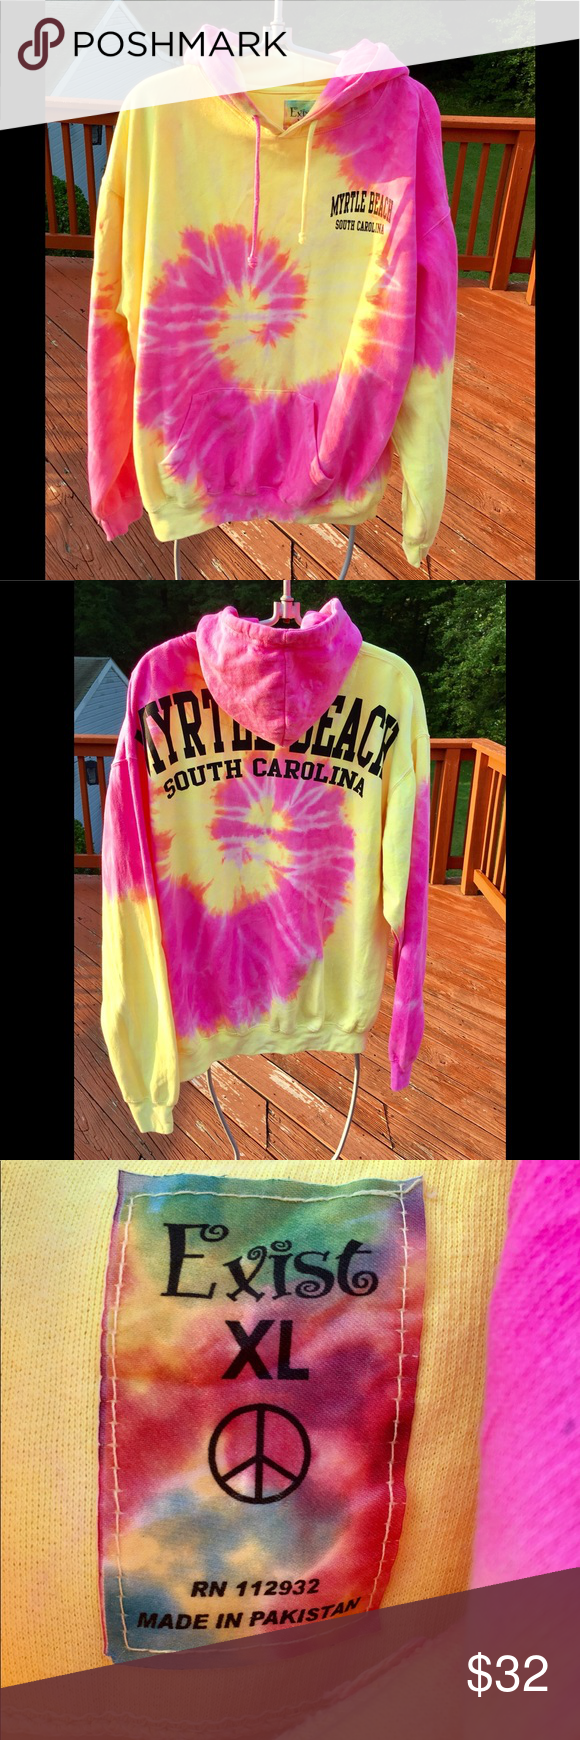 MYRTLE BEACH SOUTH CAROLINA TYE DYED SWEATSHIRT HOODED